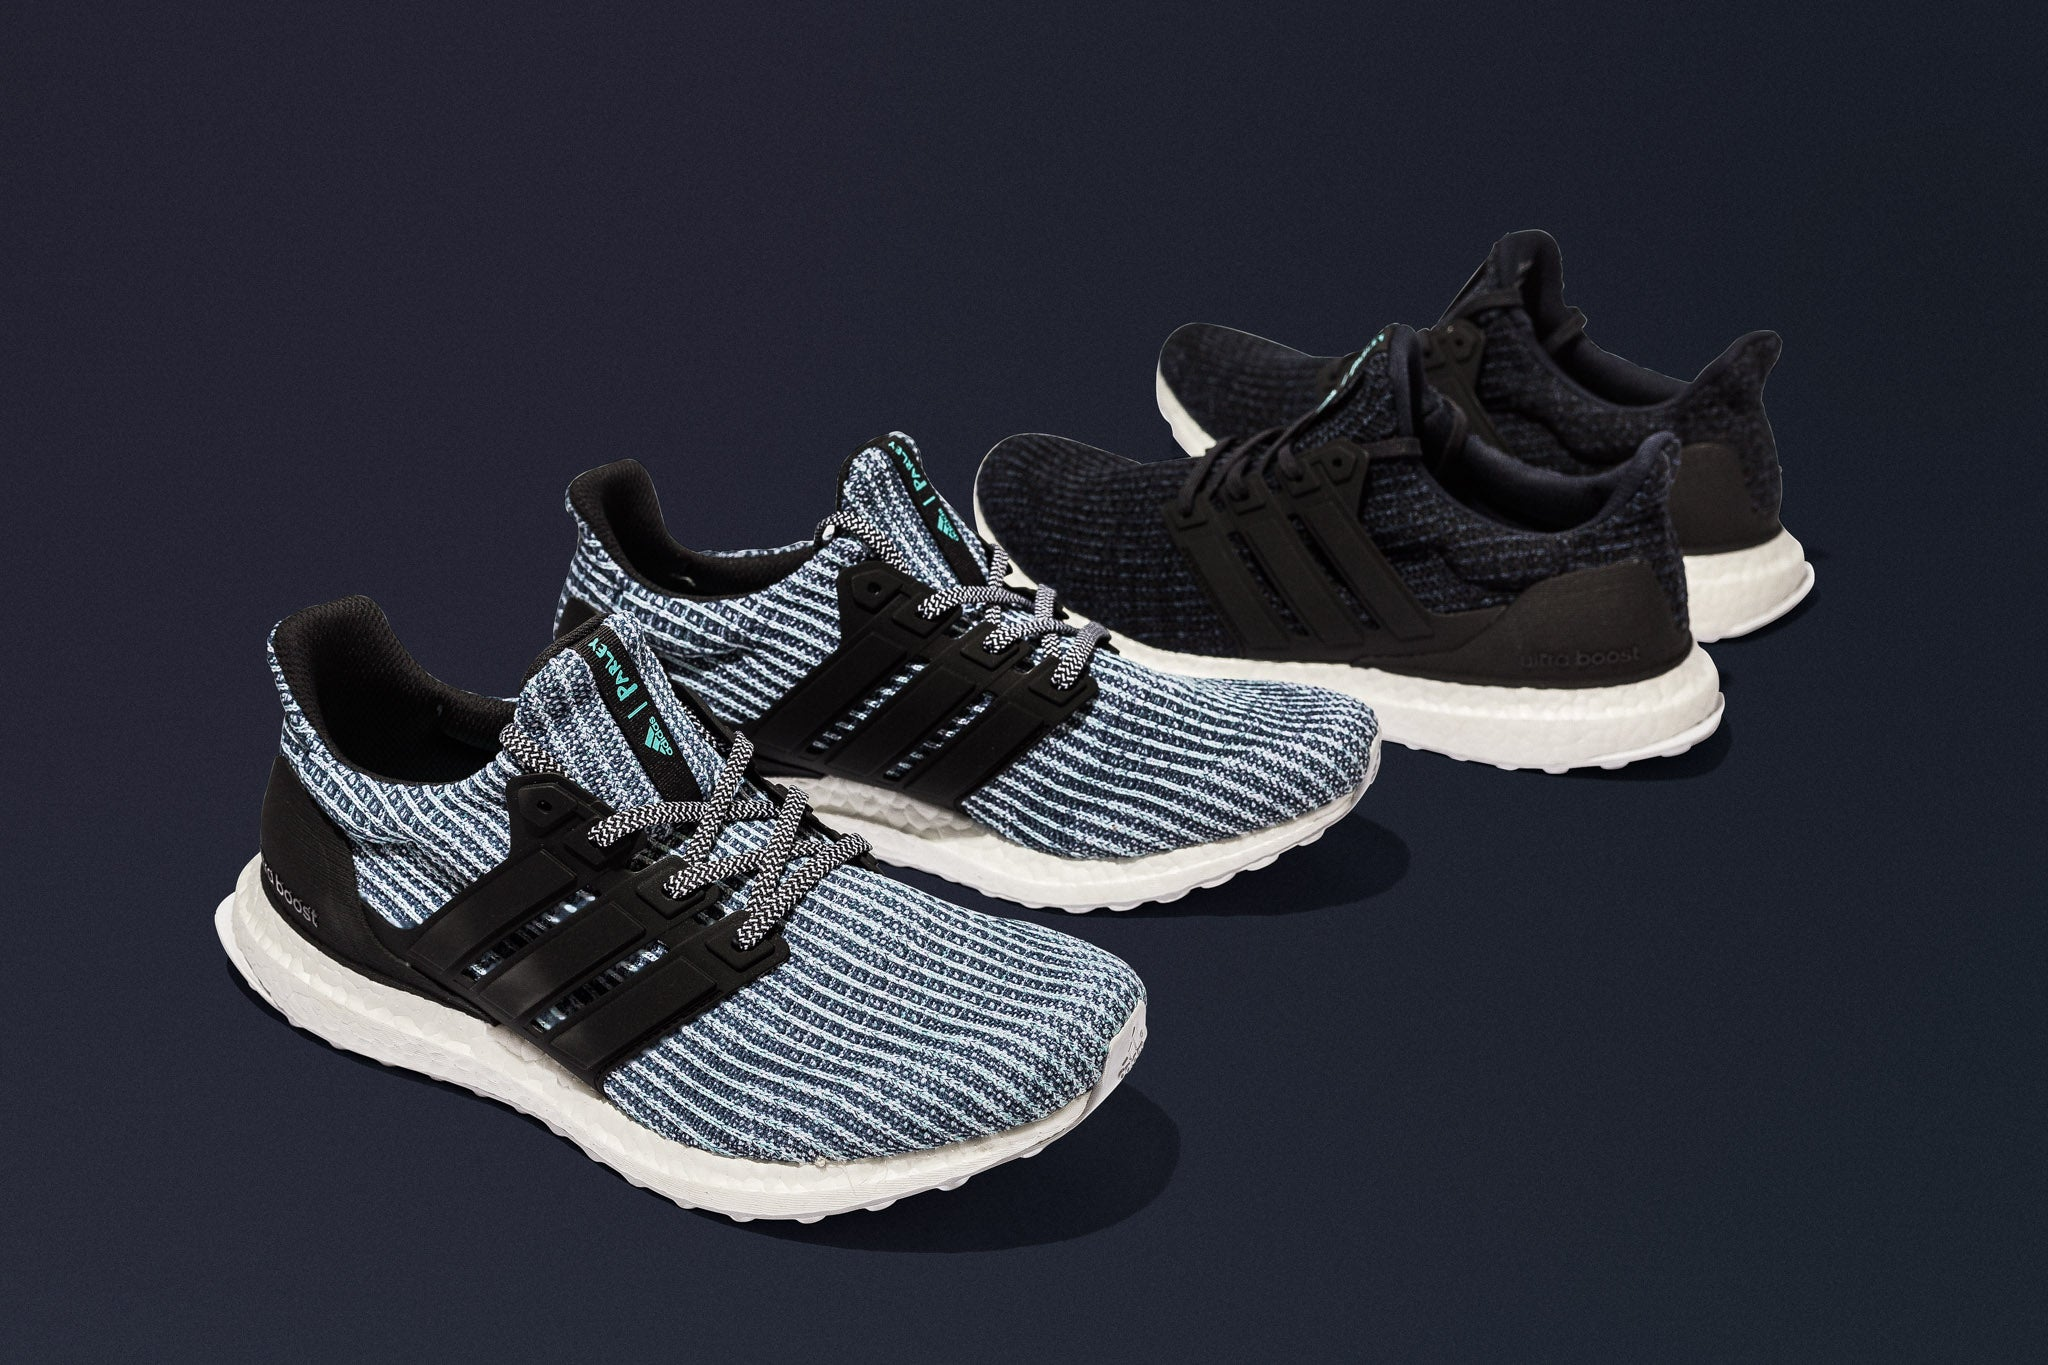 adidas x Parley Ultraboost Collection 06.27.18 – Capsule Online